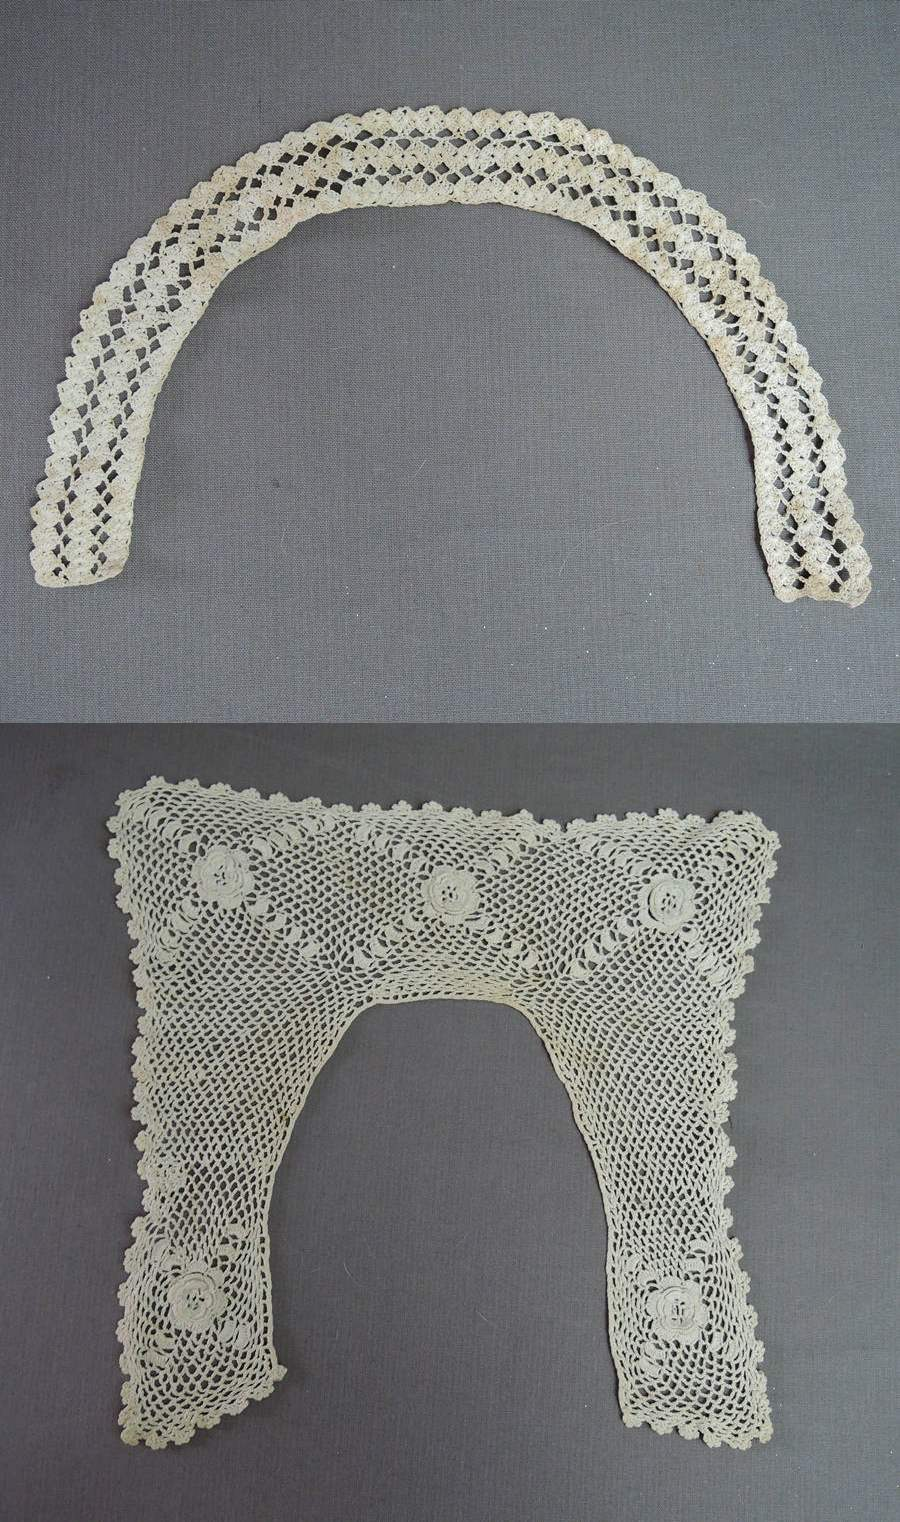 2 Vintage Child's Crochet Lace Collars, Antique  1900s Handmade Lace